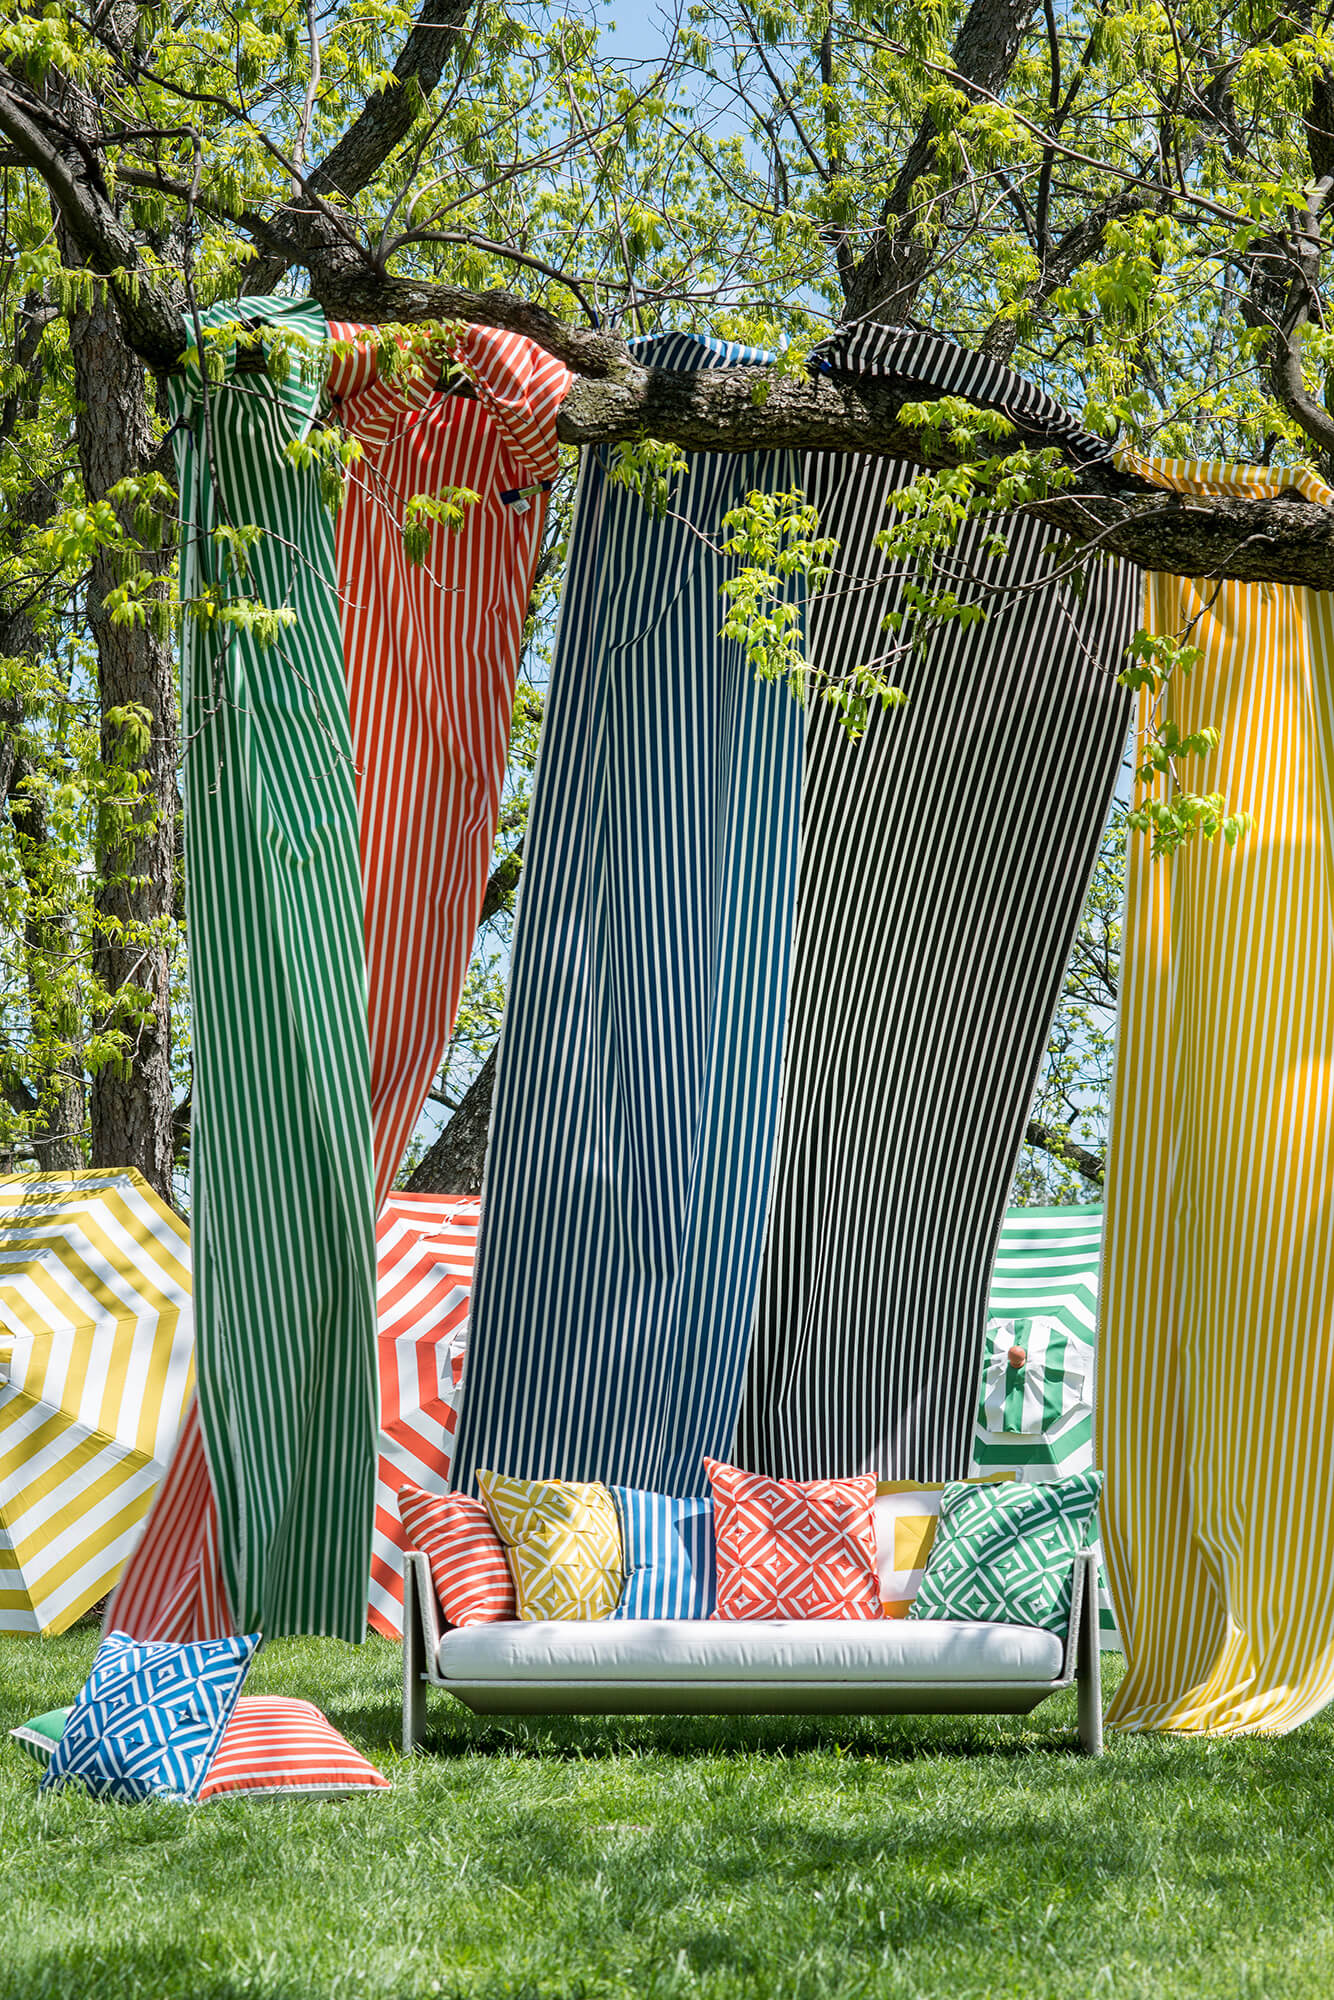 Pillows and Umbrellas featuring bright cabana stripes in red, green, blue and yellow